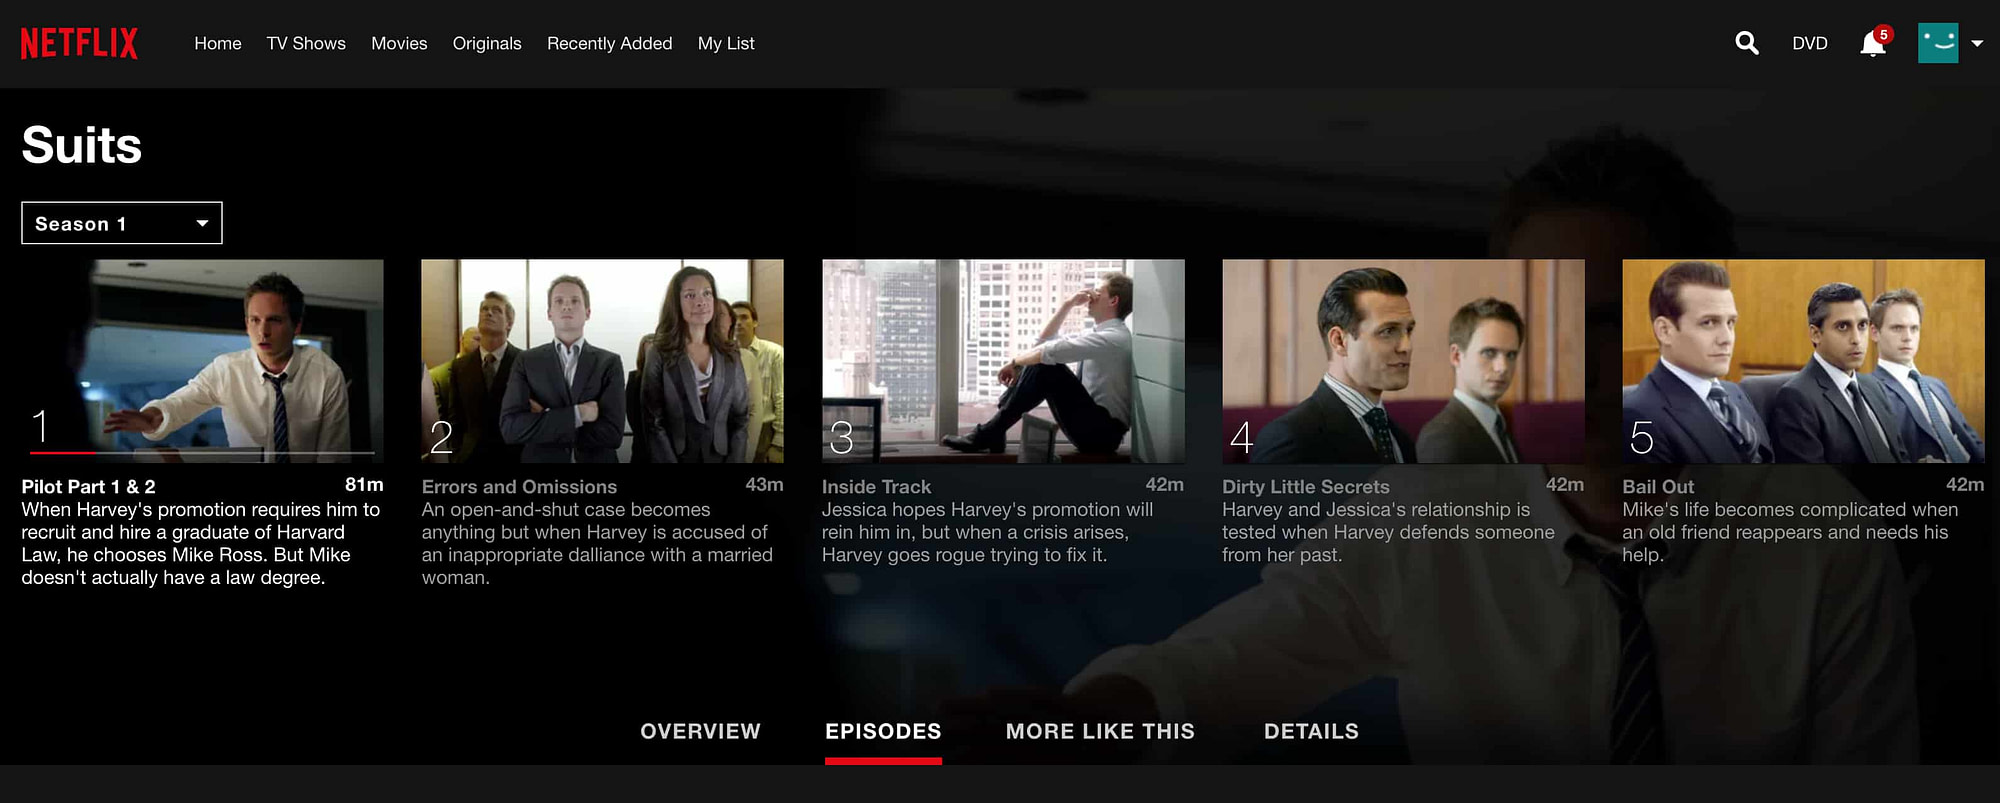 Is suits on netflix